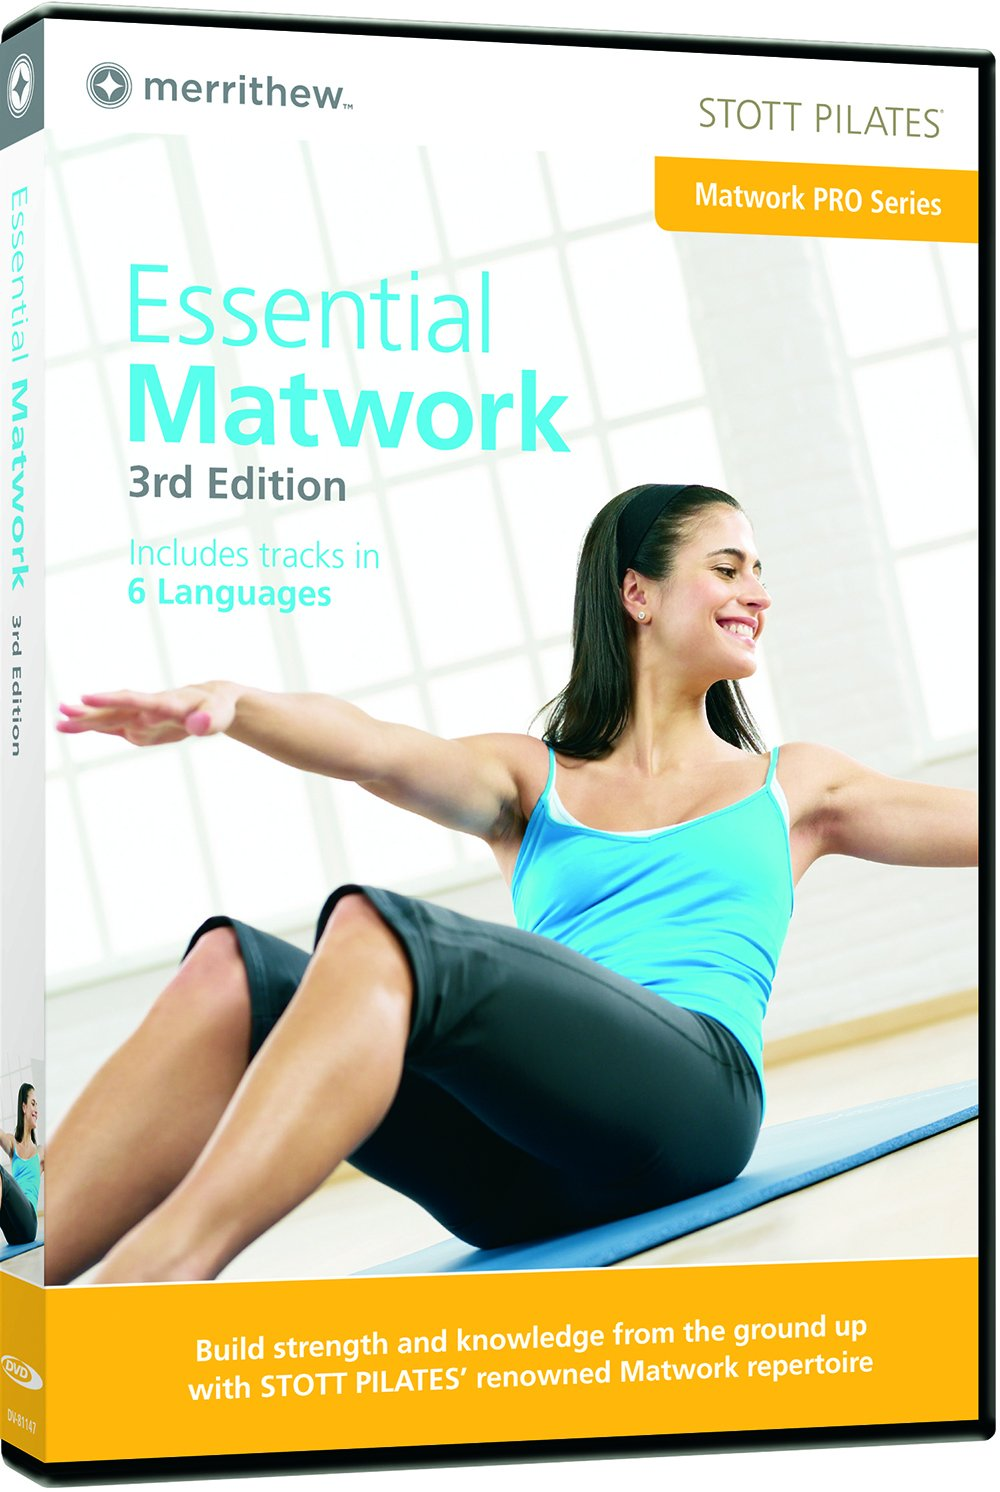 Stott Pilates: Essential Matwork 3rd Edition (DVD)